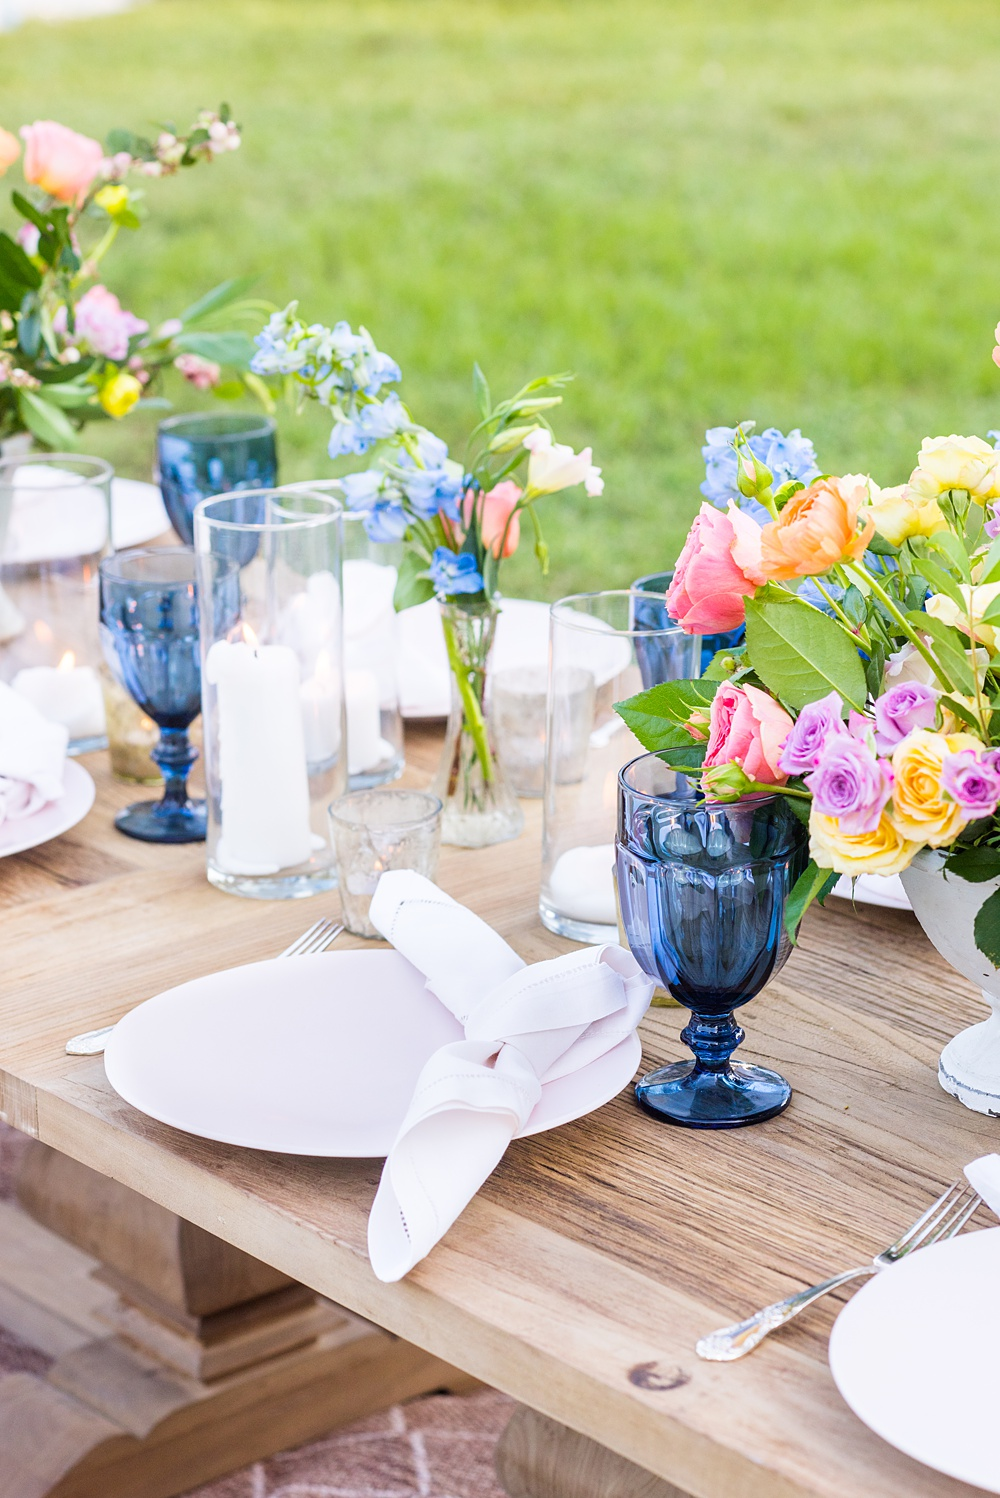 Step inside this colorful outdoor bohemian thirtieth birthday party. Full of color, lush garden flowers, #gardenparty #birthdayparty #bohemianparty #unicornparty #styledshoot #backyardparty #flowers | glitterinc.com | @glitterinc